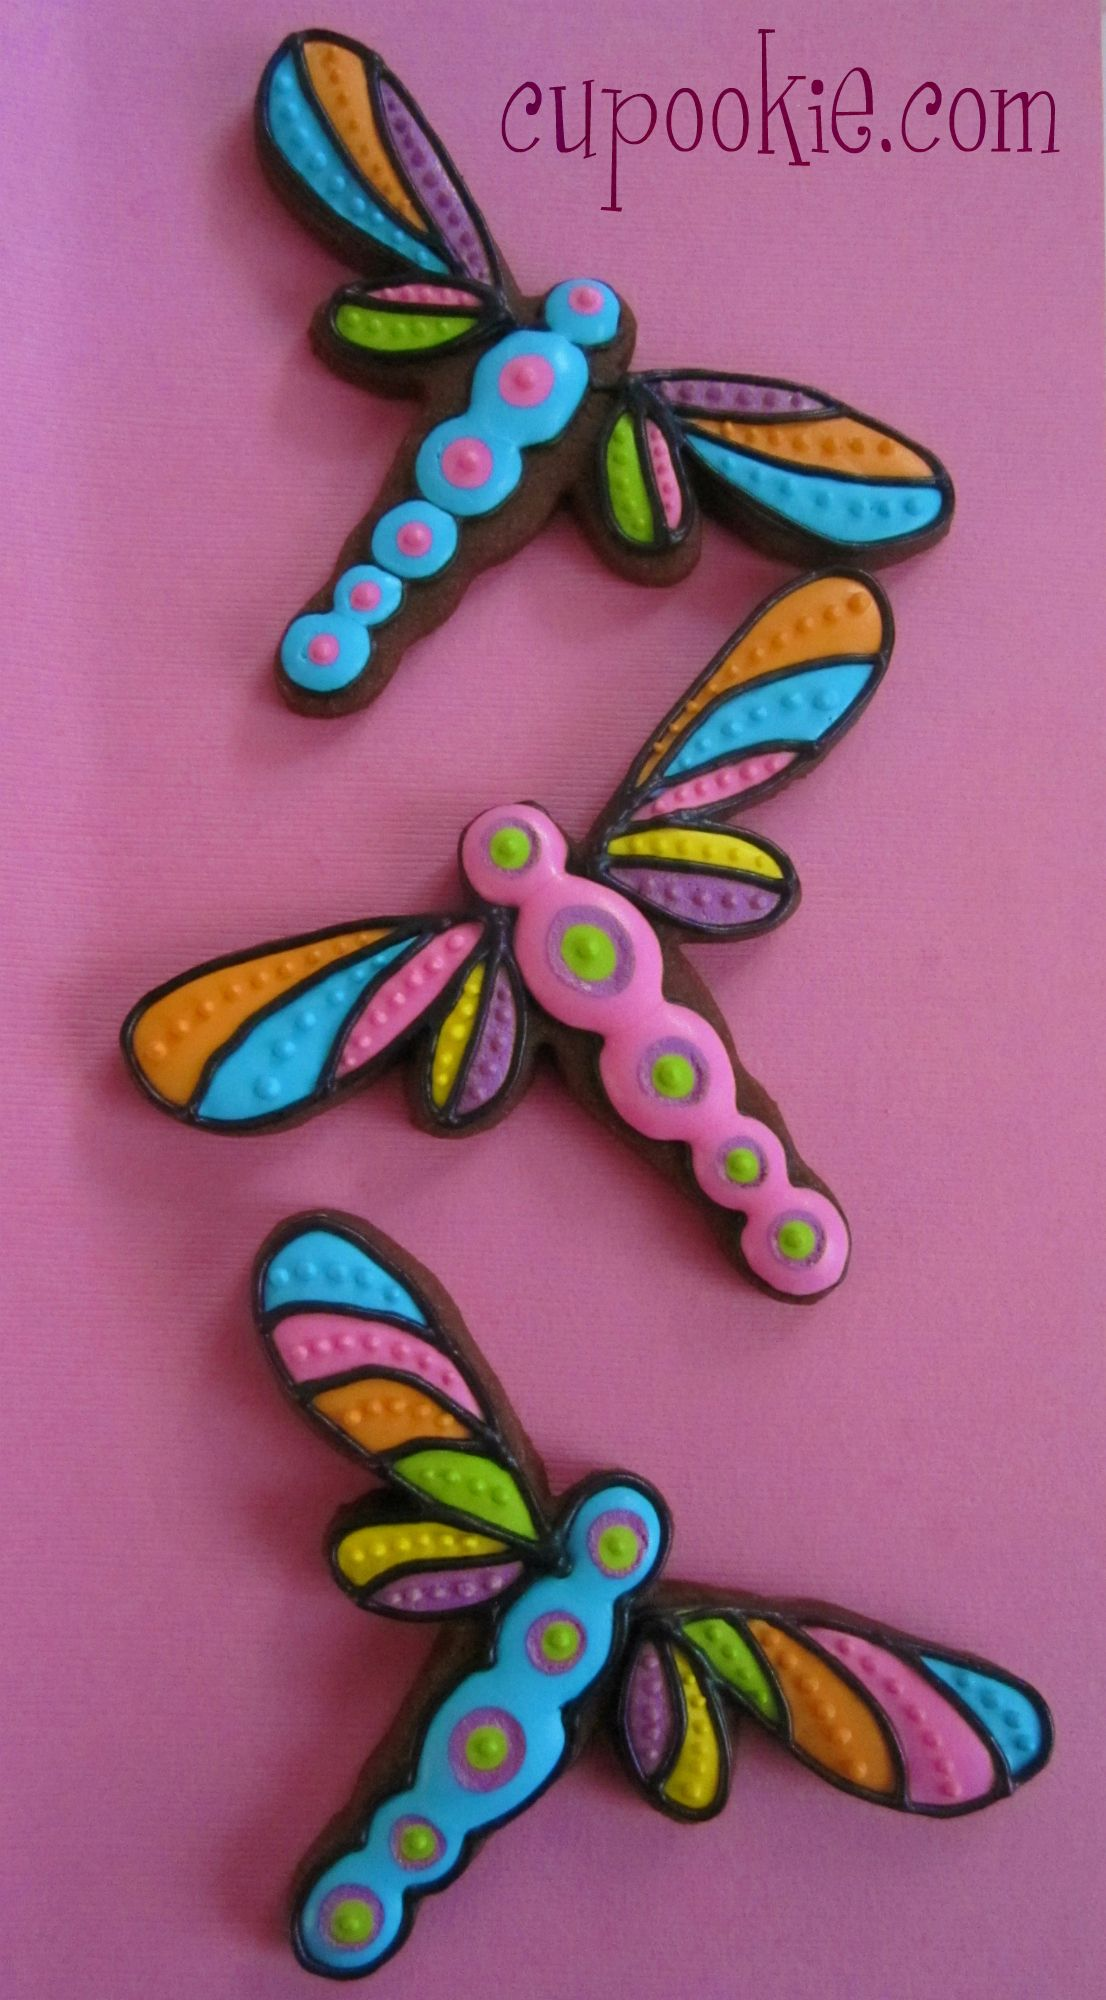 dragonflies by cupookie.com -- no instructions or blog, just a ...